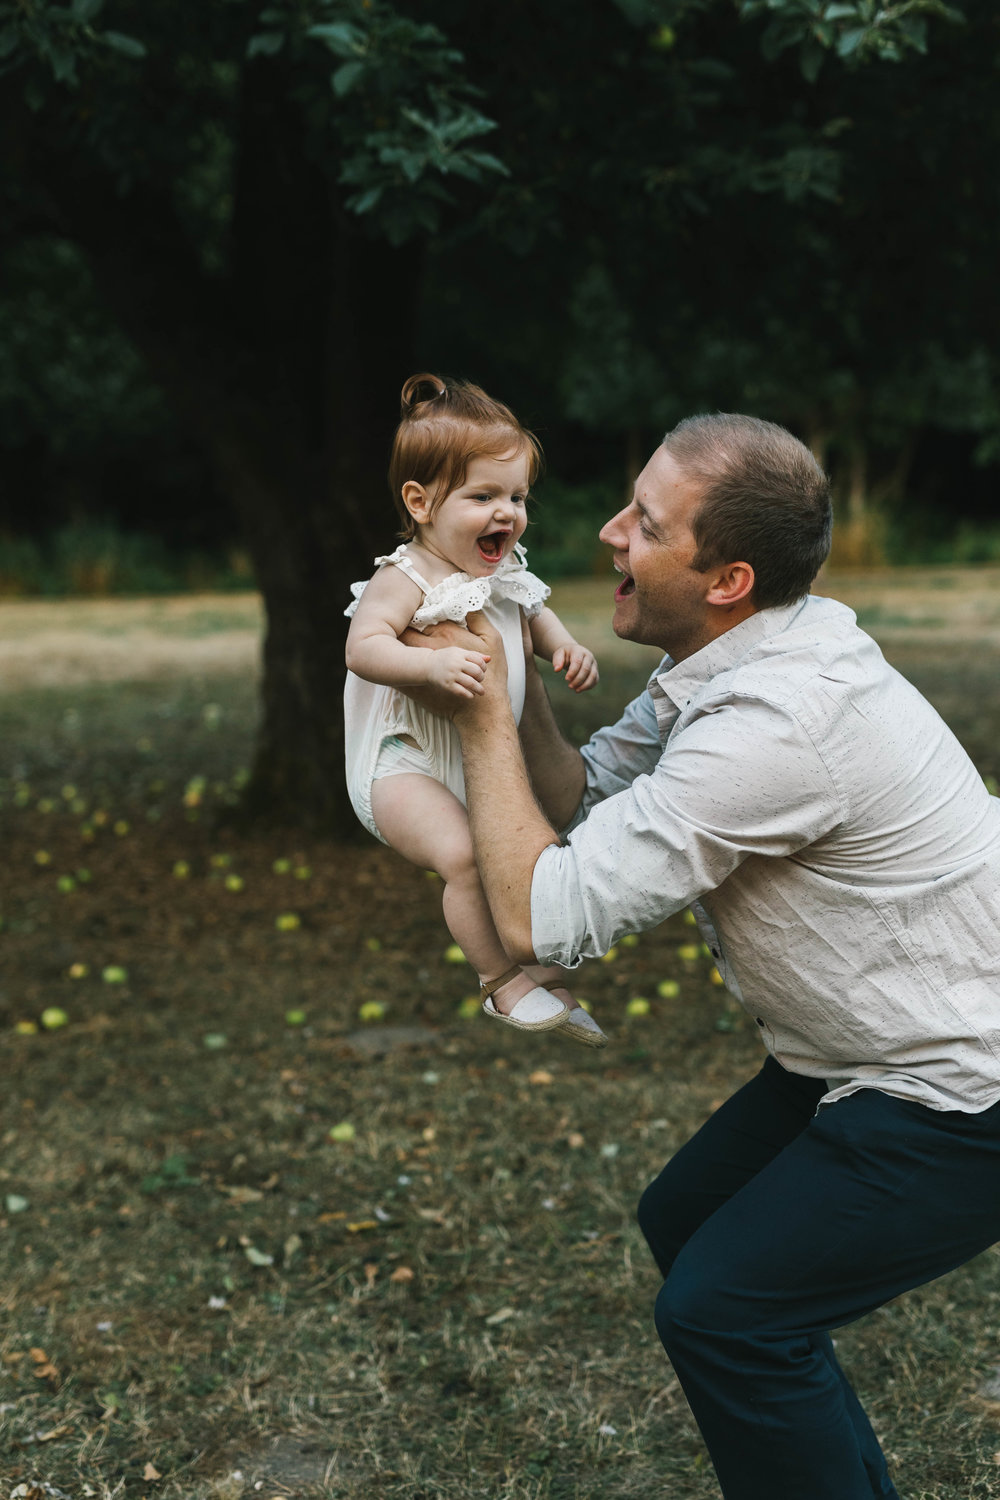 Playful and sweet family session in Issaquah at golden hour and twilight Mom and Dad with their toddler photographed by Chelsea Macor Photography in a playful and intimate way-17.jpg